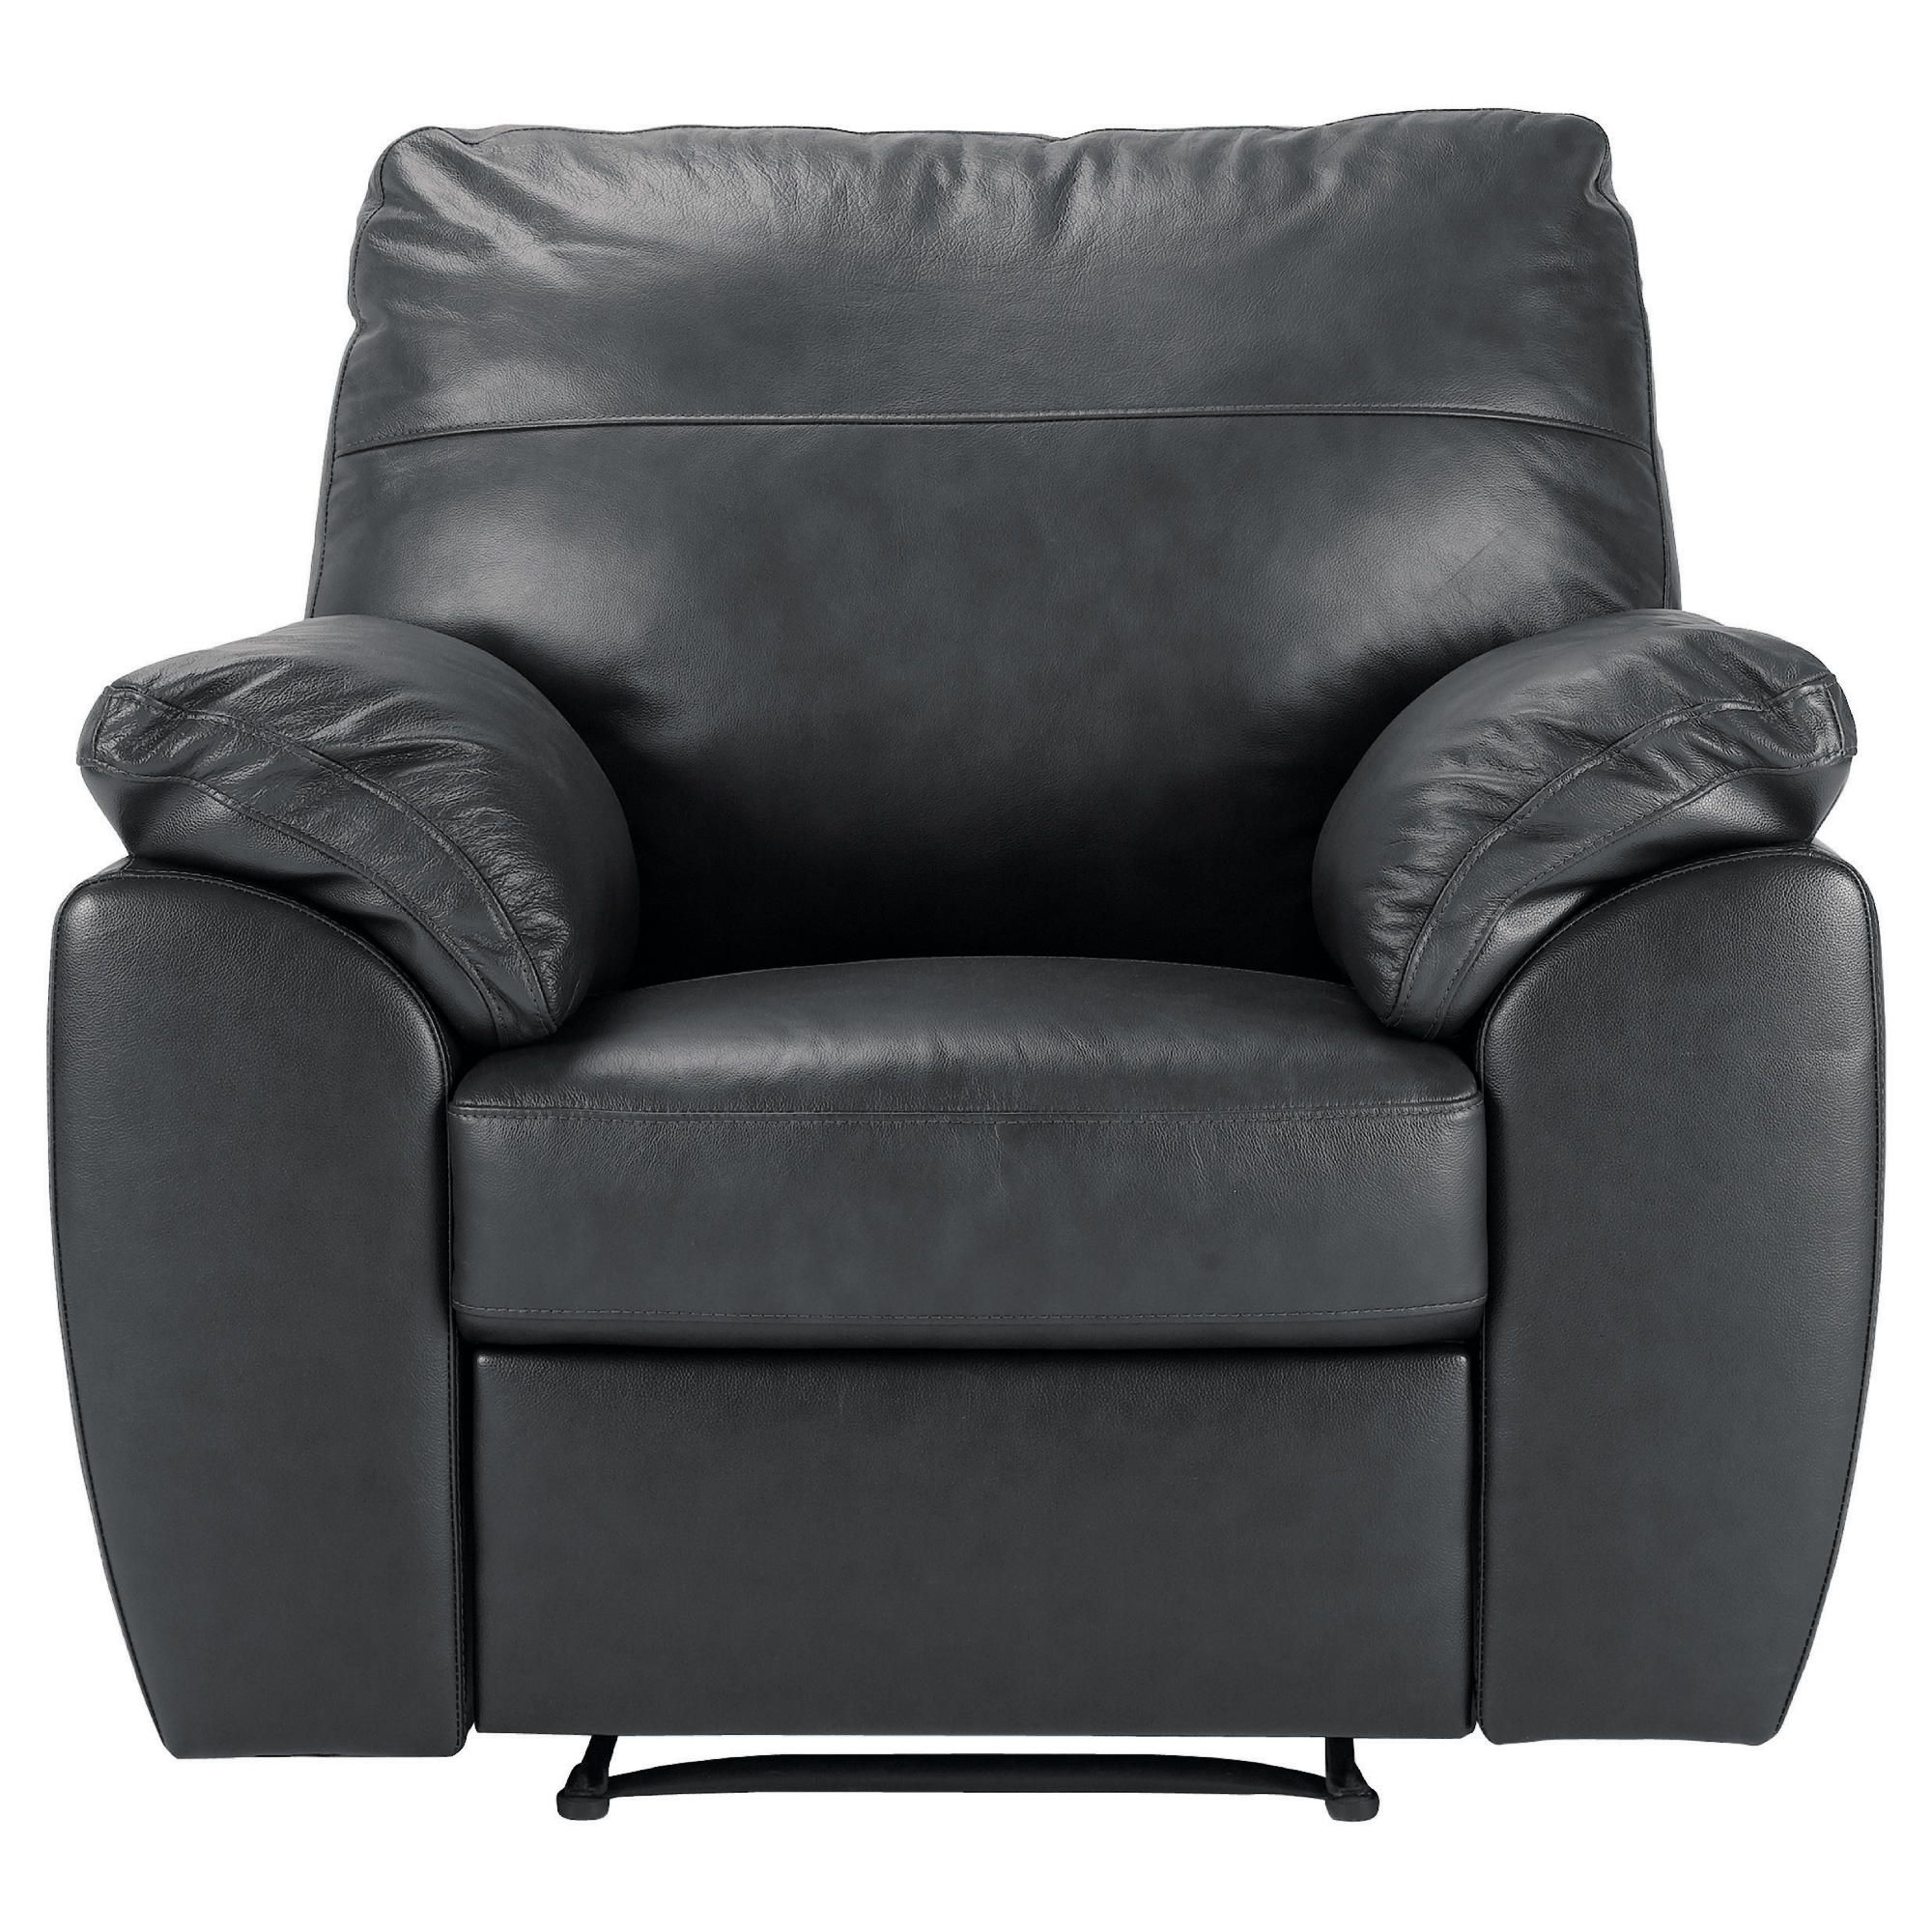 Alberta Leather Recliner Armchair, Black at Tesco Direct